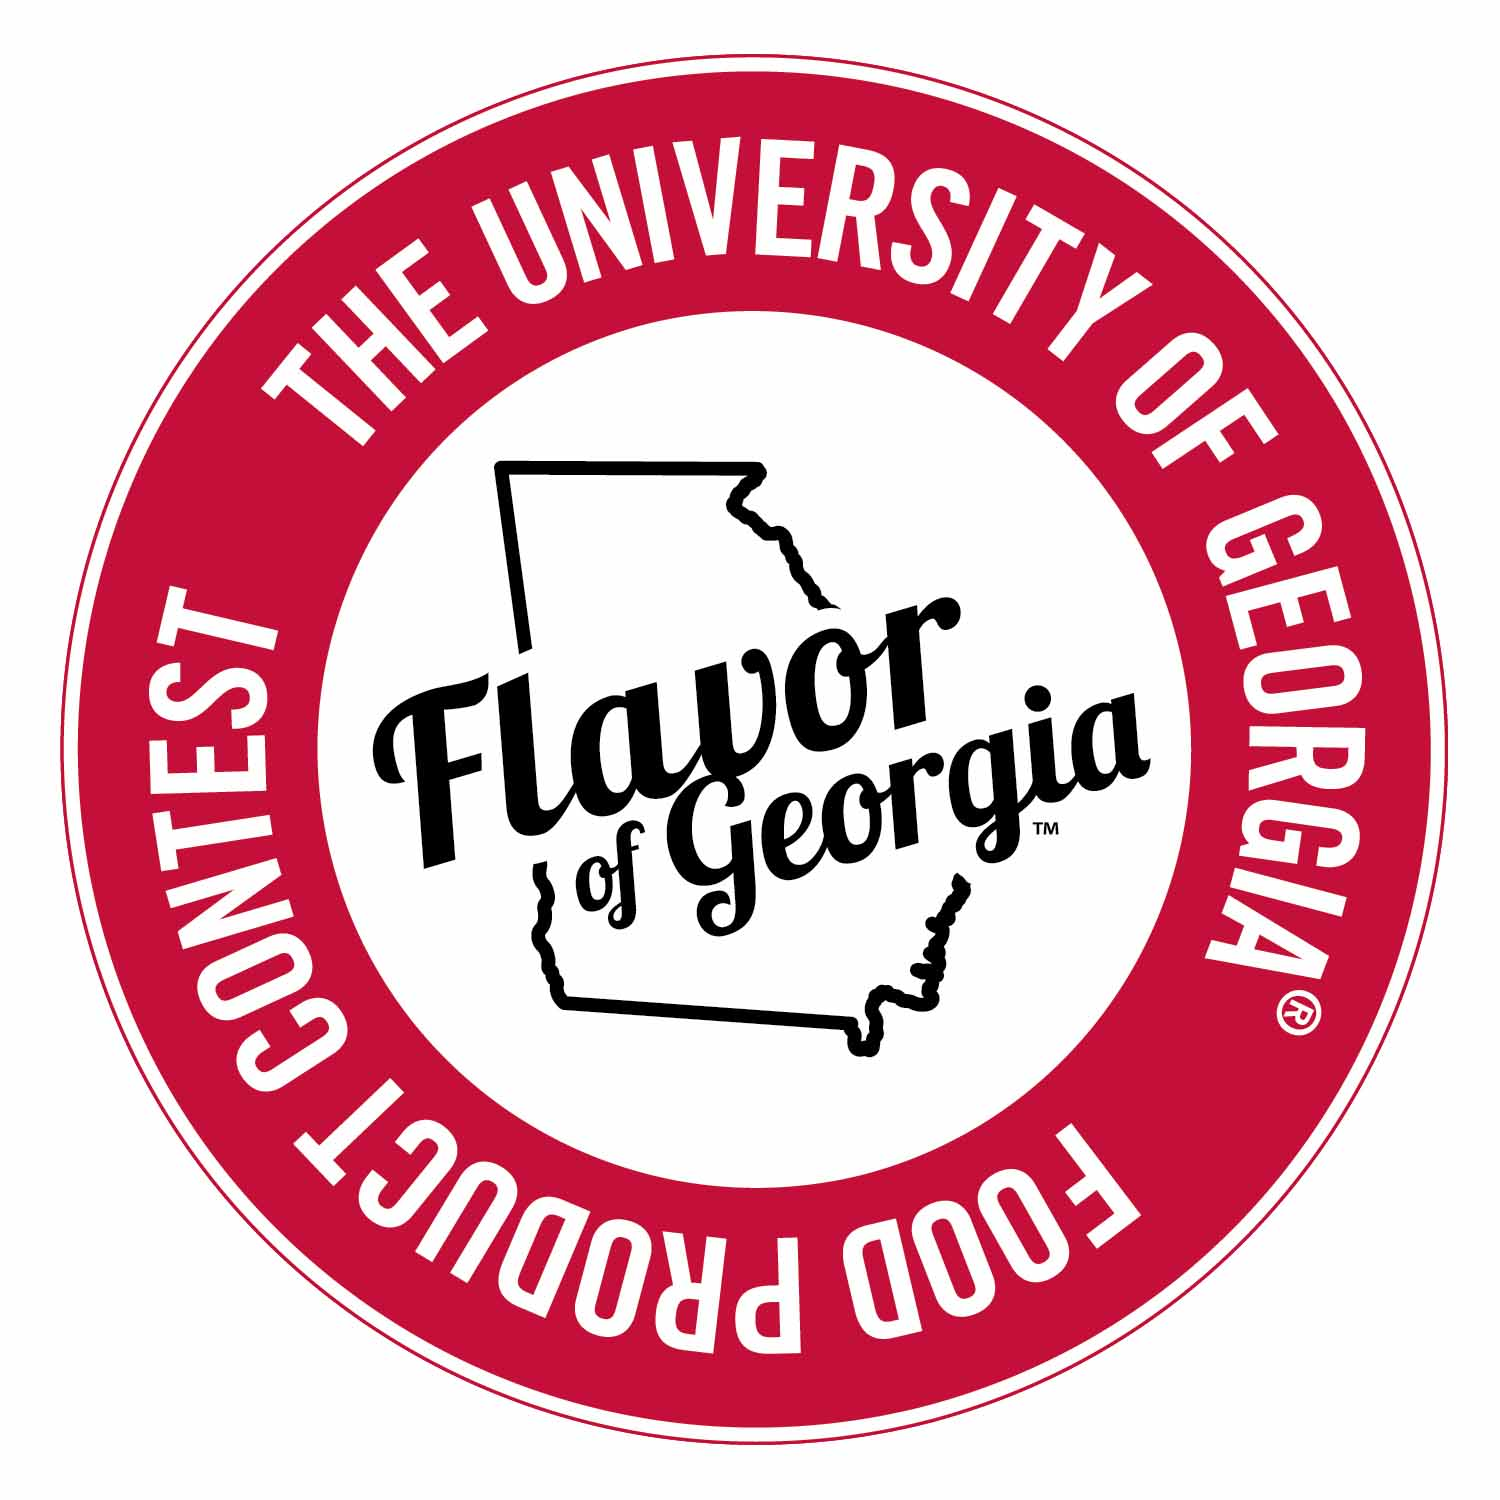 A team of food industry experts and grocery buyers selected 33 products to compete in the final round of the University of Georgia's 2019 Flavor of Georgia Food Product Contest.